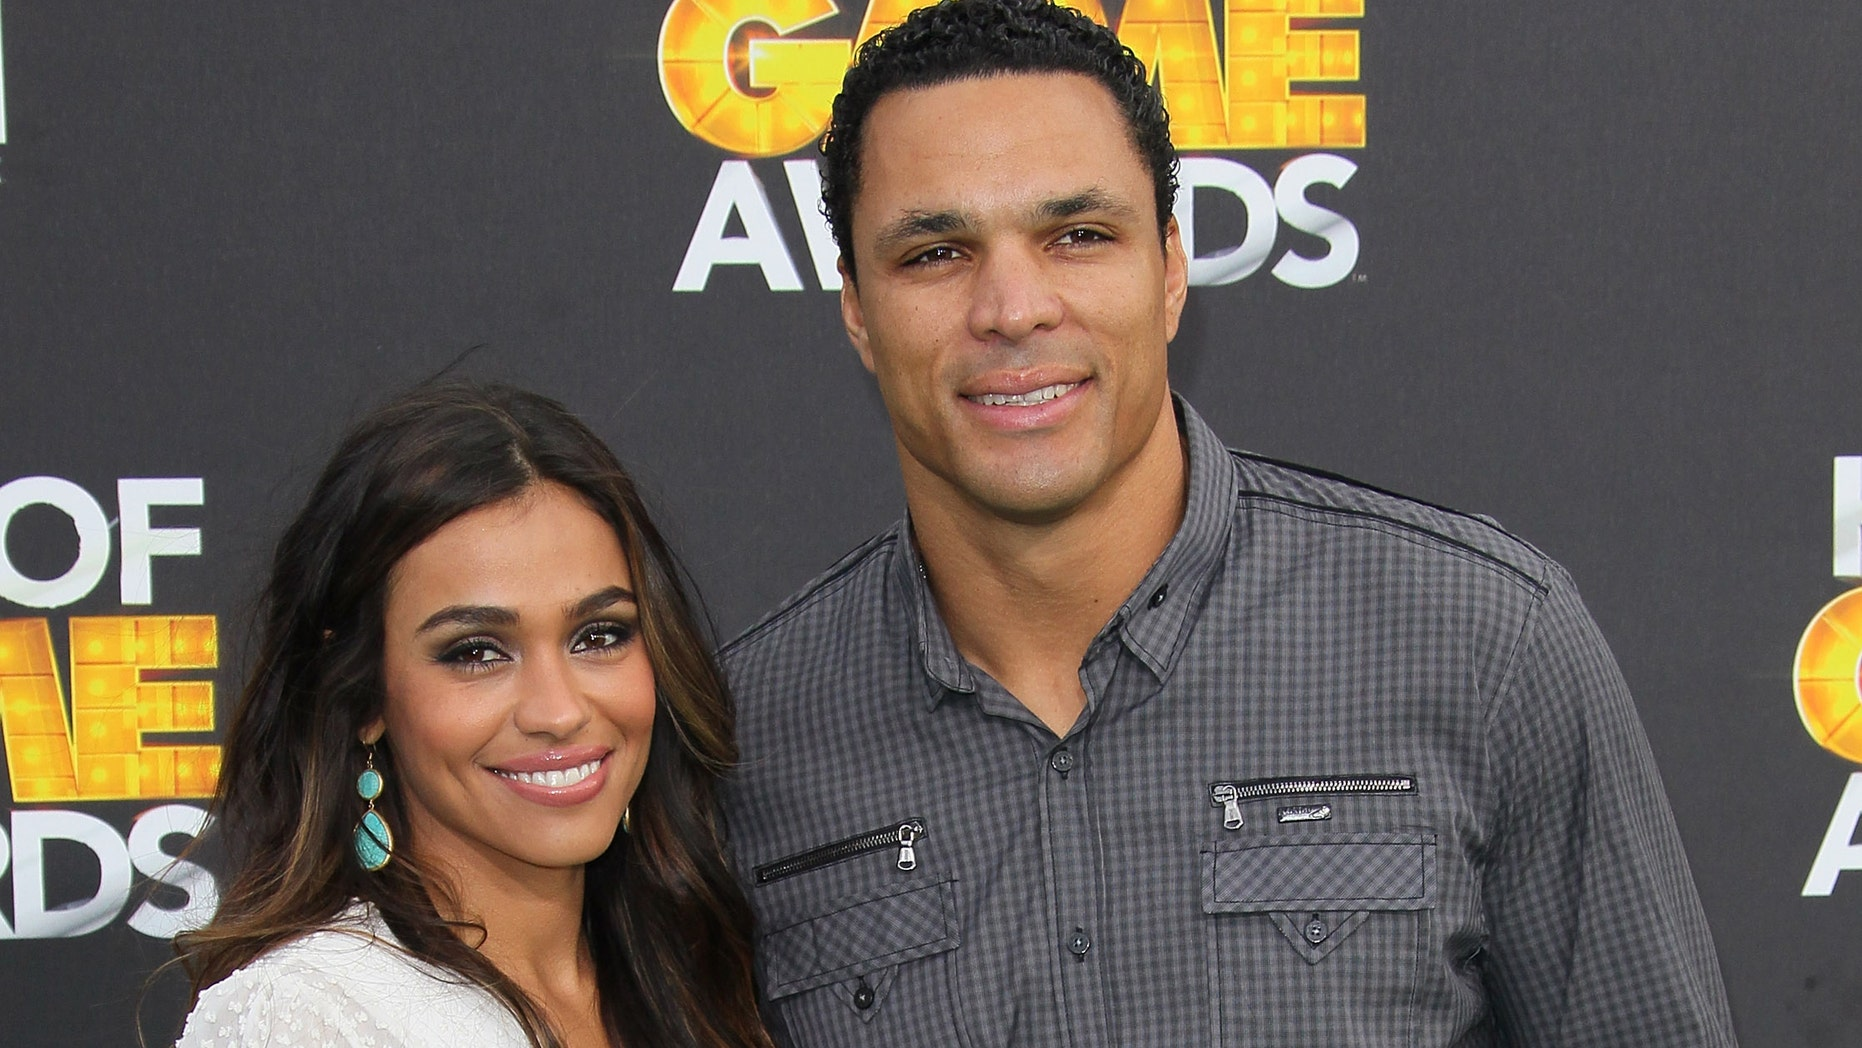 SANTA MONICA, CA - FEBRUARY 18:  NFL player Tony Gonzalez (R) and wife October Gonzalez attend the 2nd Annual Cartoon Network Hall of Game Awards at Barker Hangar on February 18, 2012 in Santa Monica, California.  (Photo by David Livingston/Getty Images)